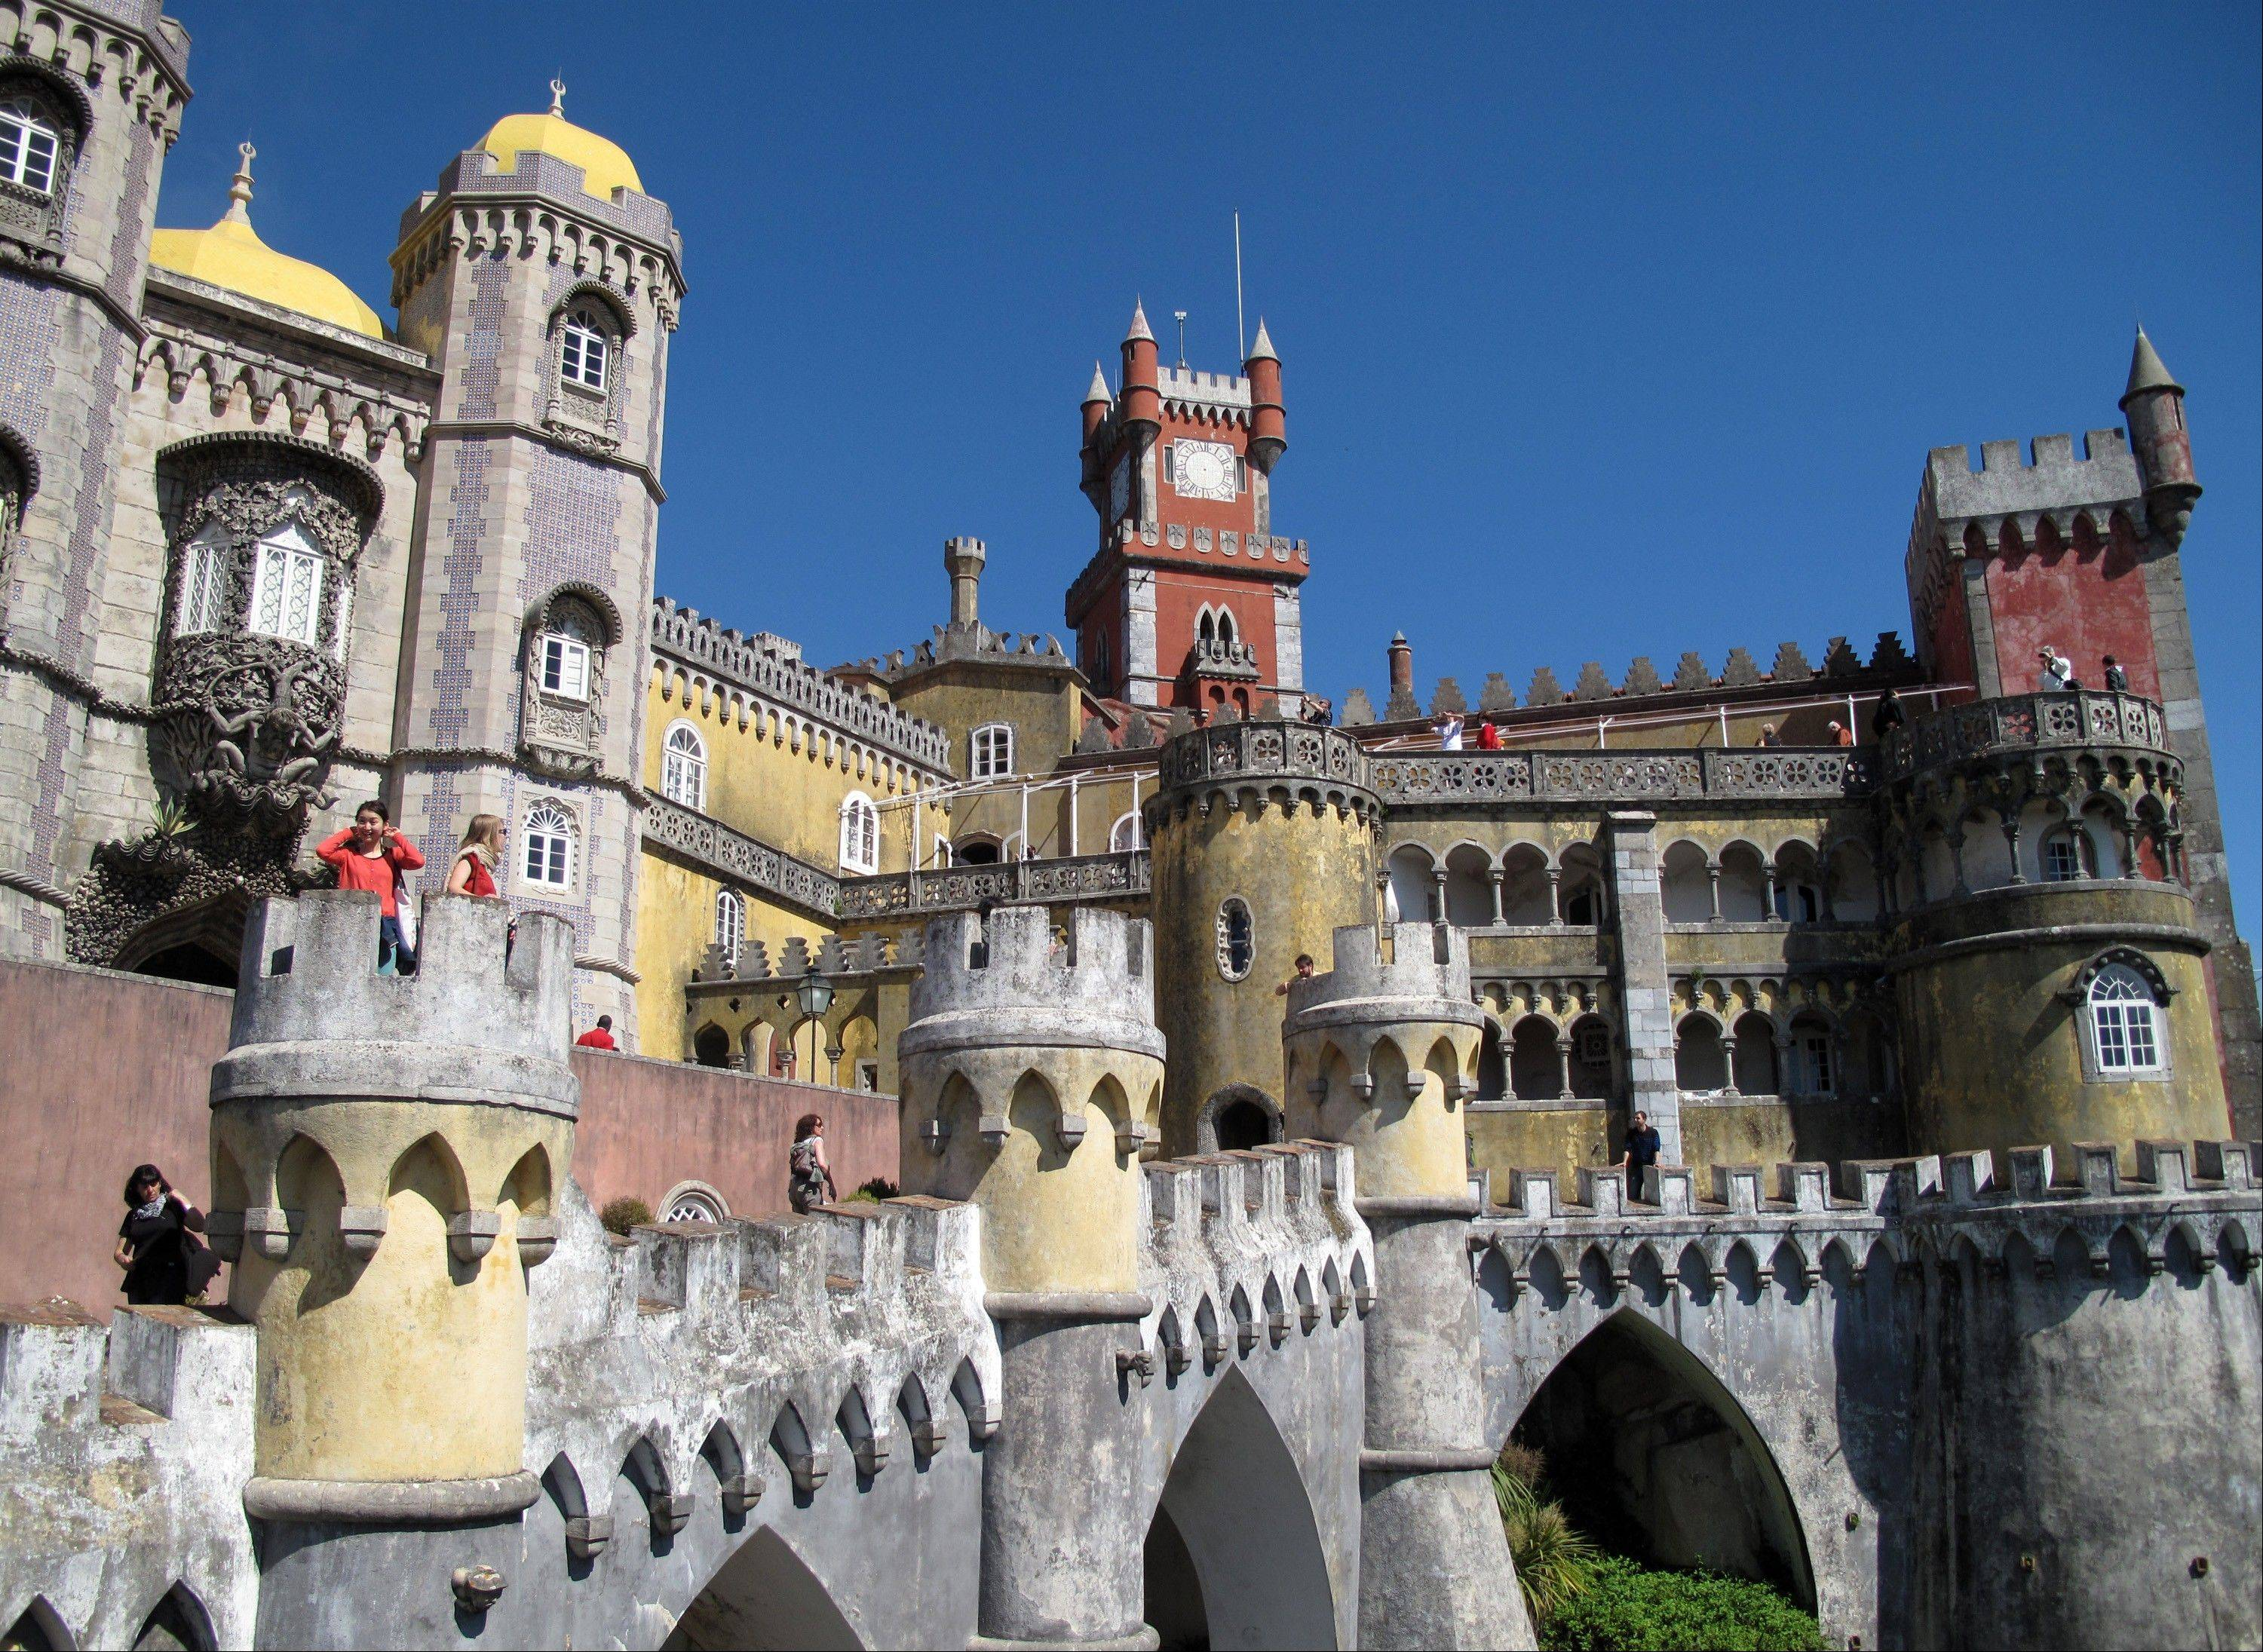 The colorful facade of Pena Palace in Sintra.